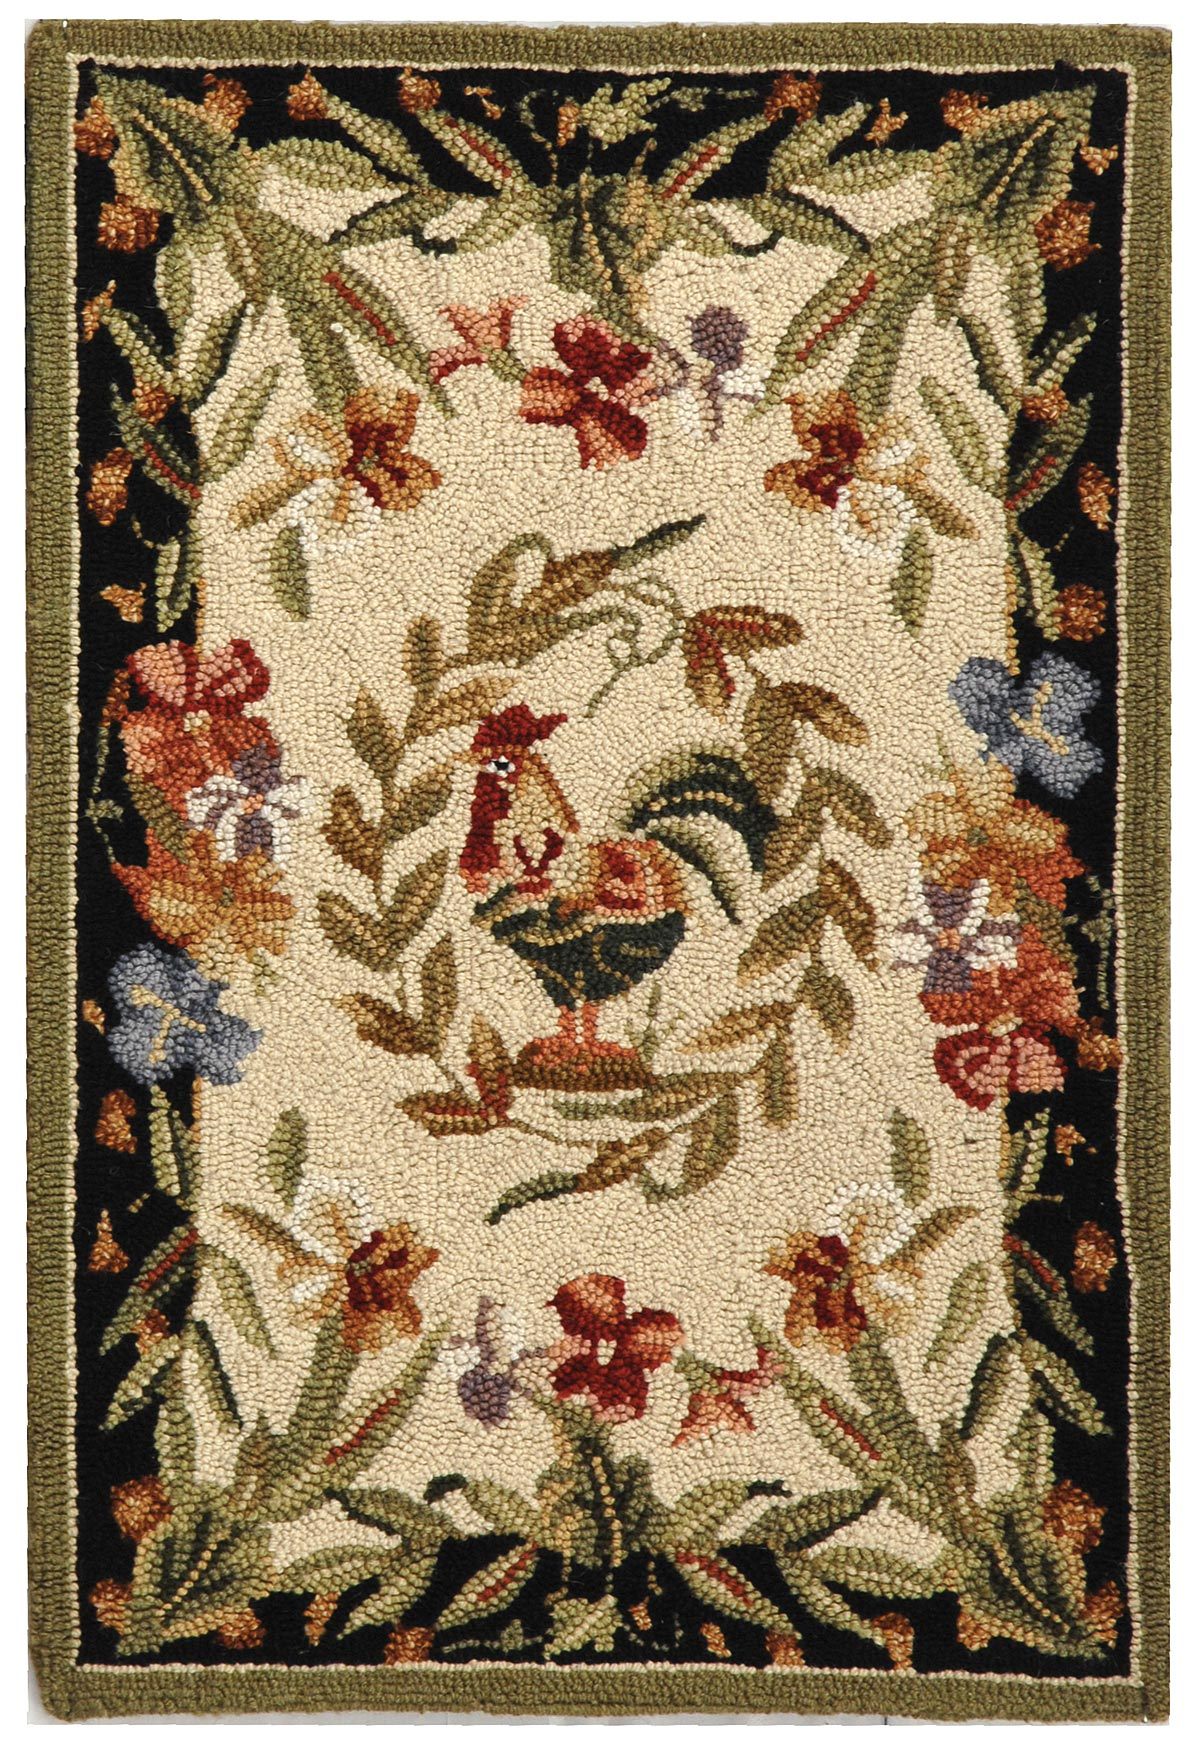 Rug Hk92a Chelsea Area Rugs By Safavieh